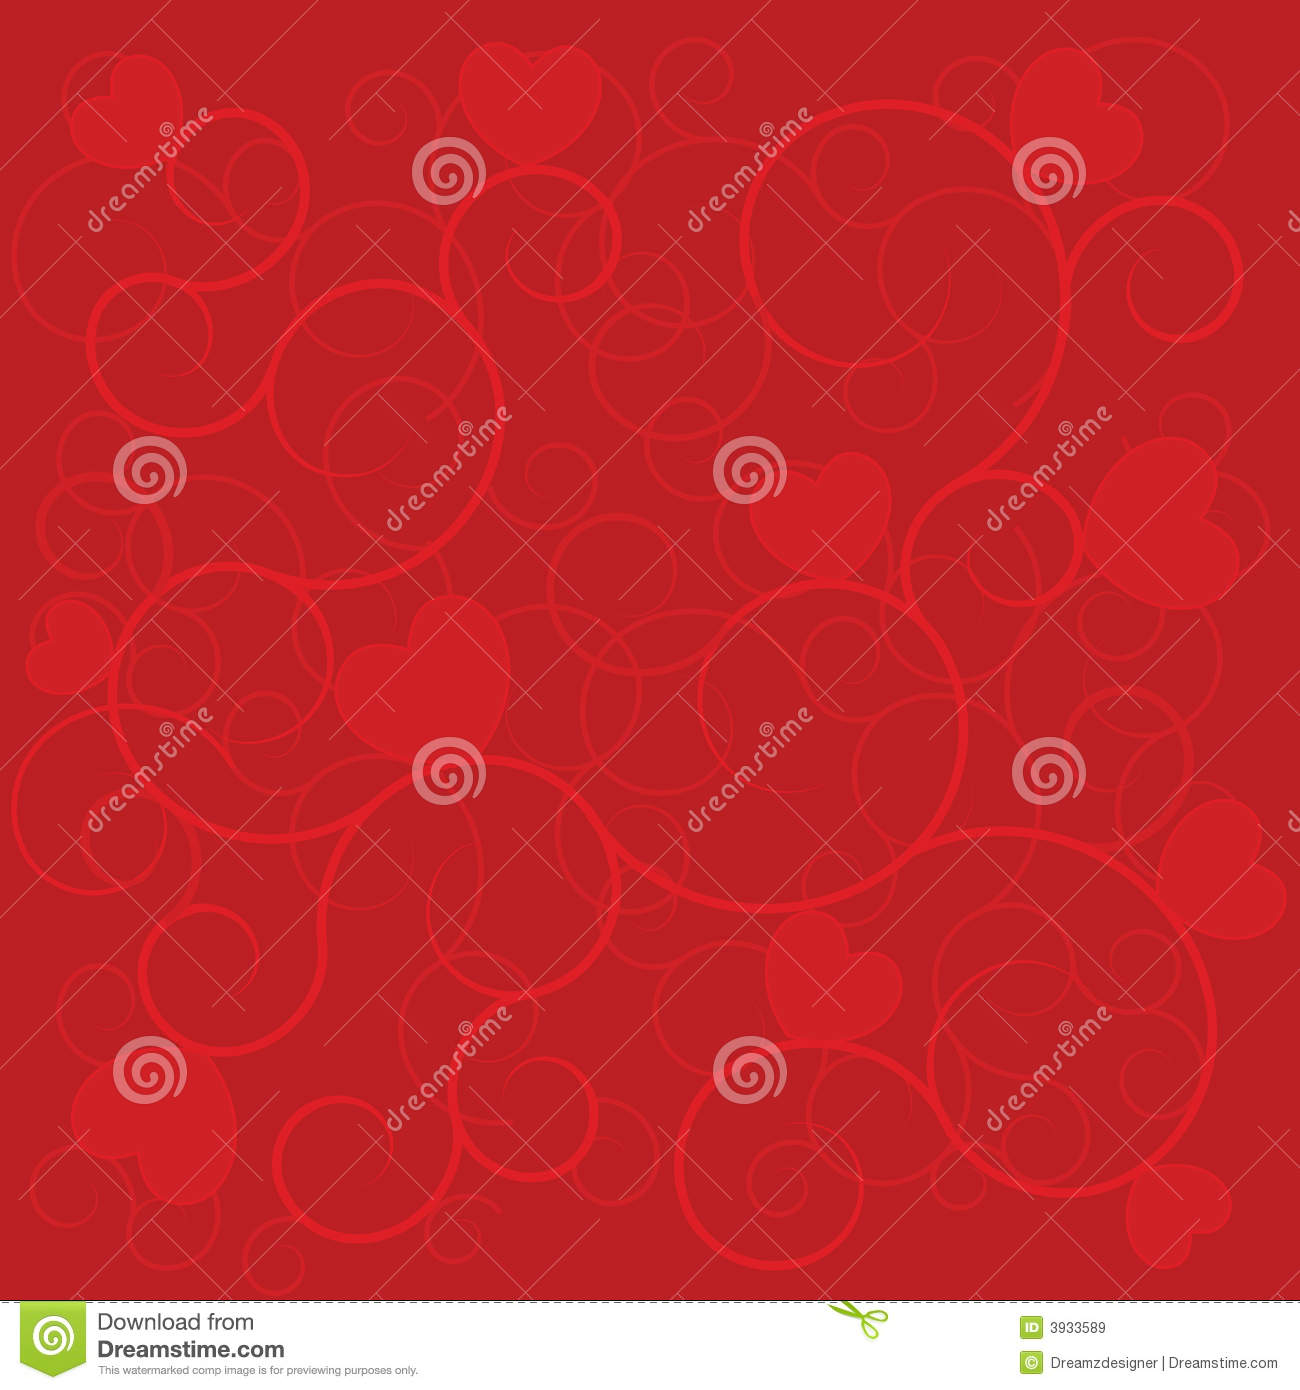 Wedding Background Red Hearts Stock Vector - Illustration of lovely ...